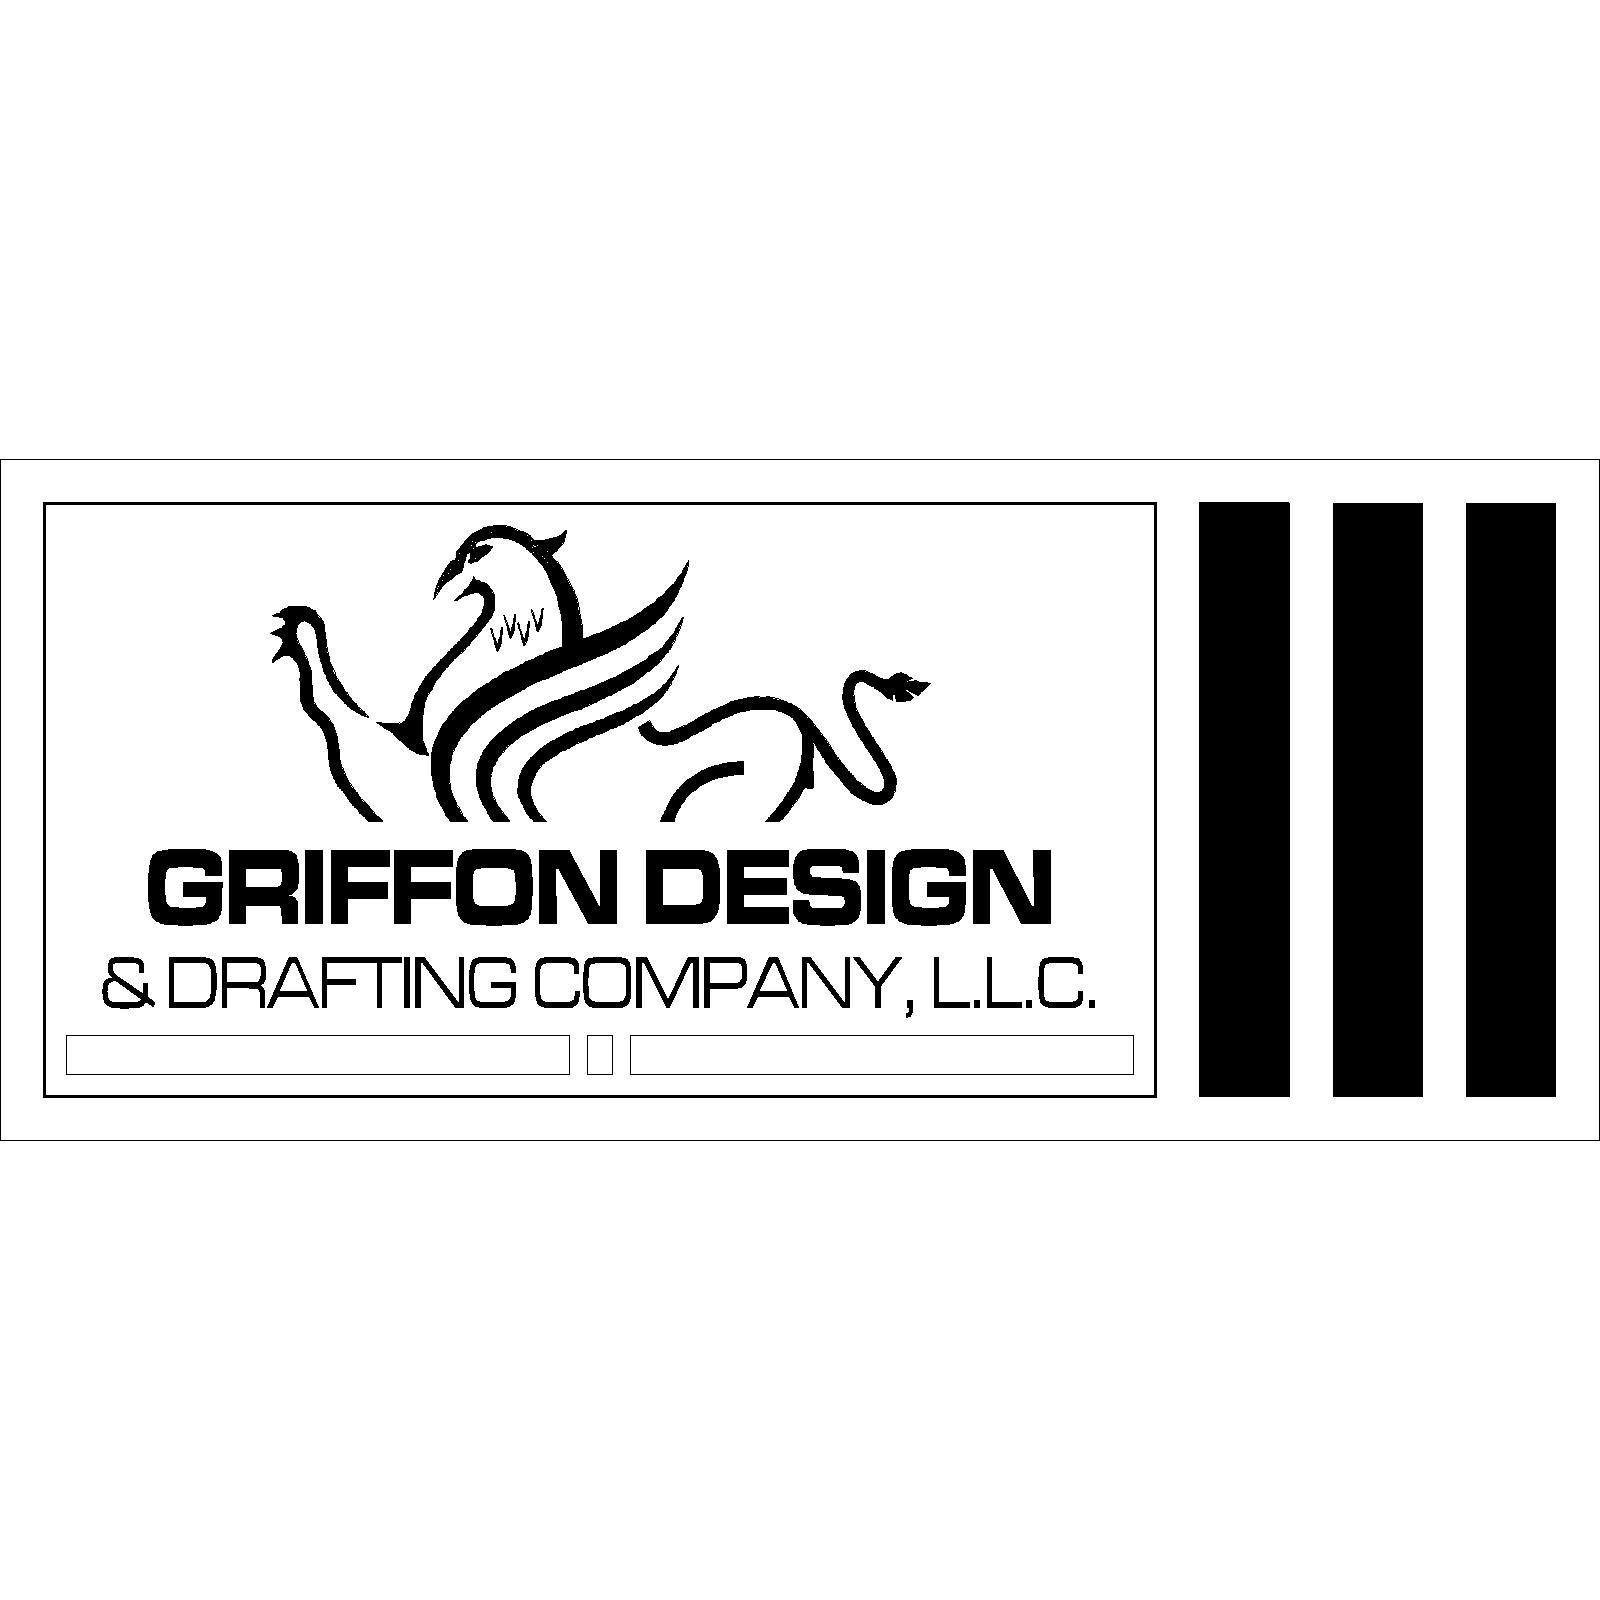 Griffon Design & Drafting Company, L.L.C.